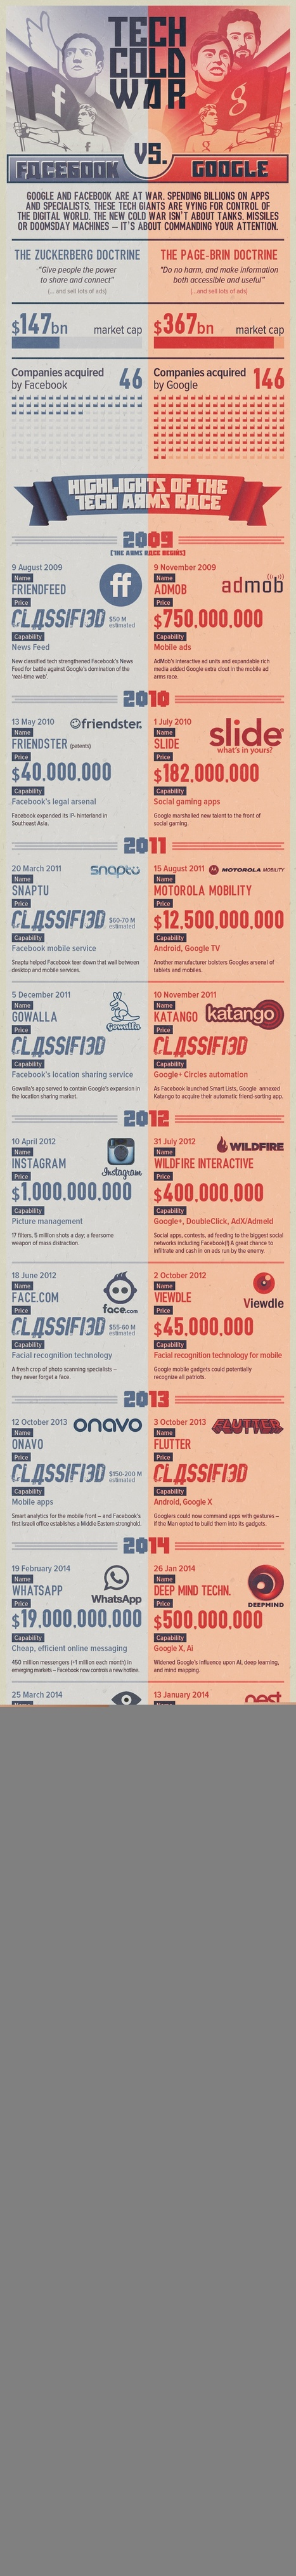 Google vs. Facebook: Who Is Winning the Tech Cold War? [INFOGRAPHIC] | Economy and cinema | Scoop.it